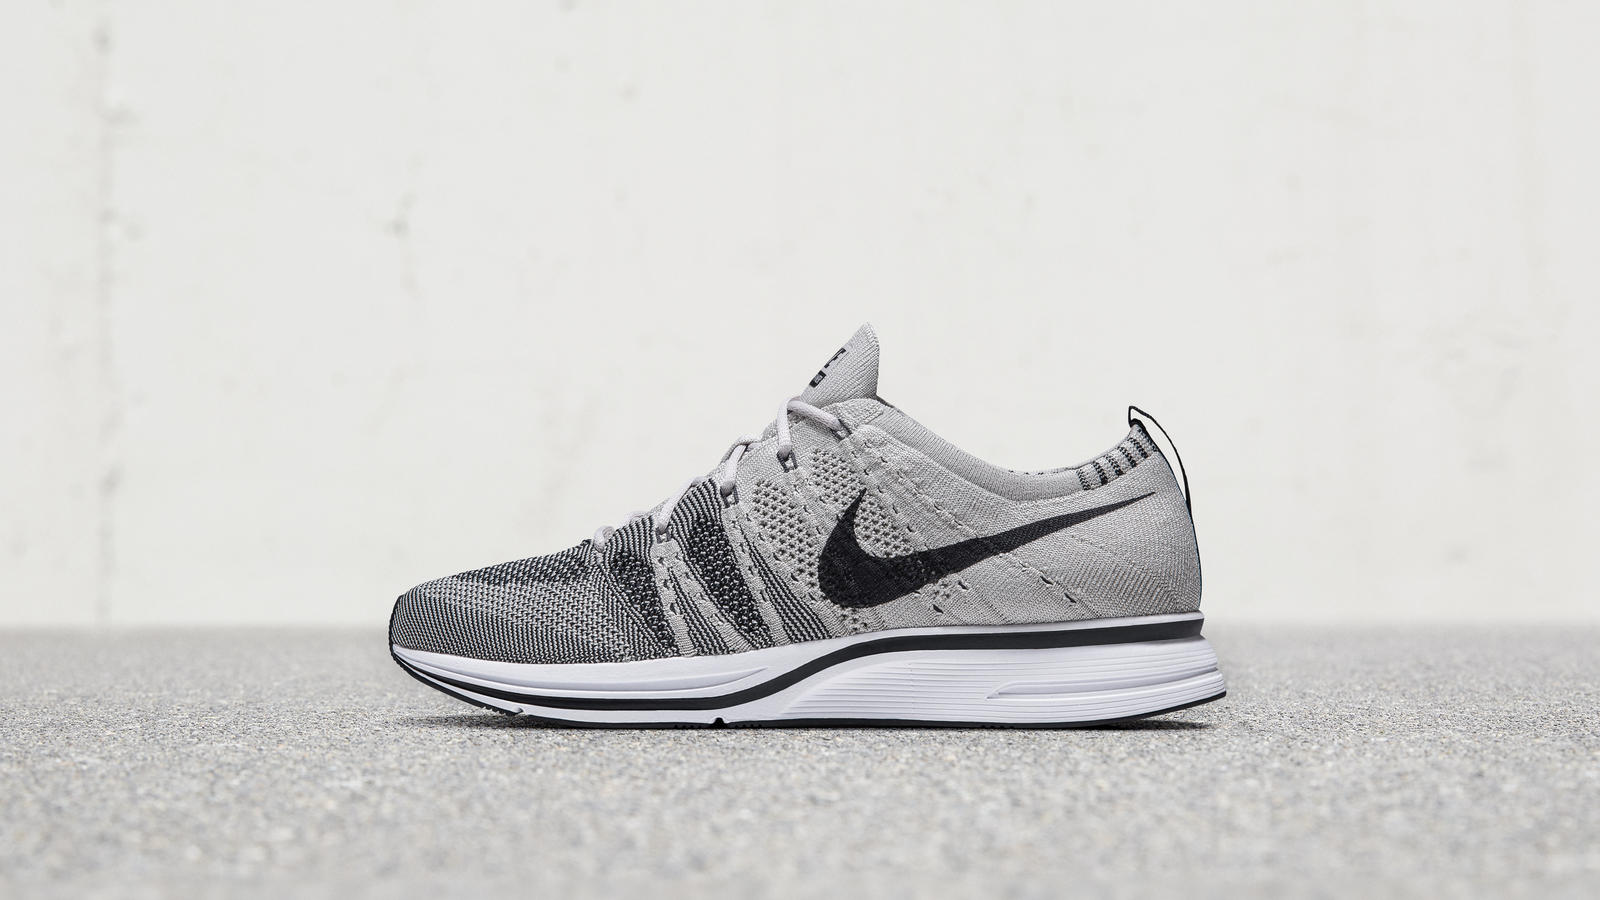 dba06ad40e0 ... sale the nike flyknit trainer is officially making a return b38d8 38926